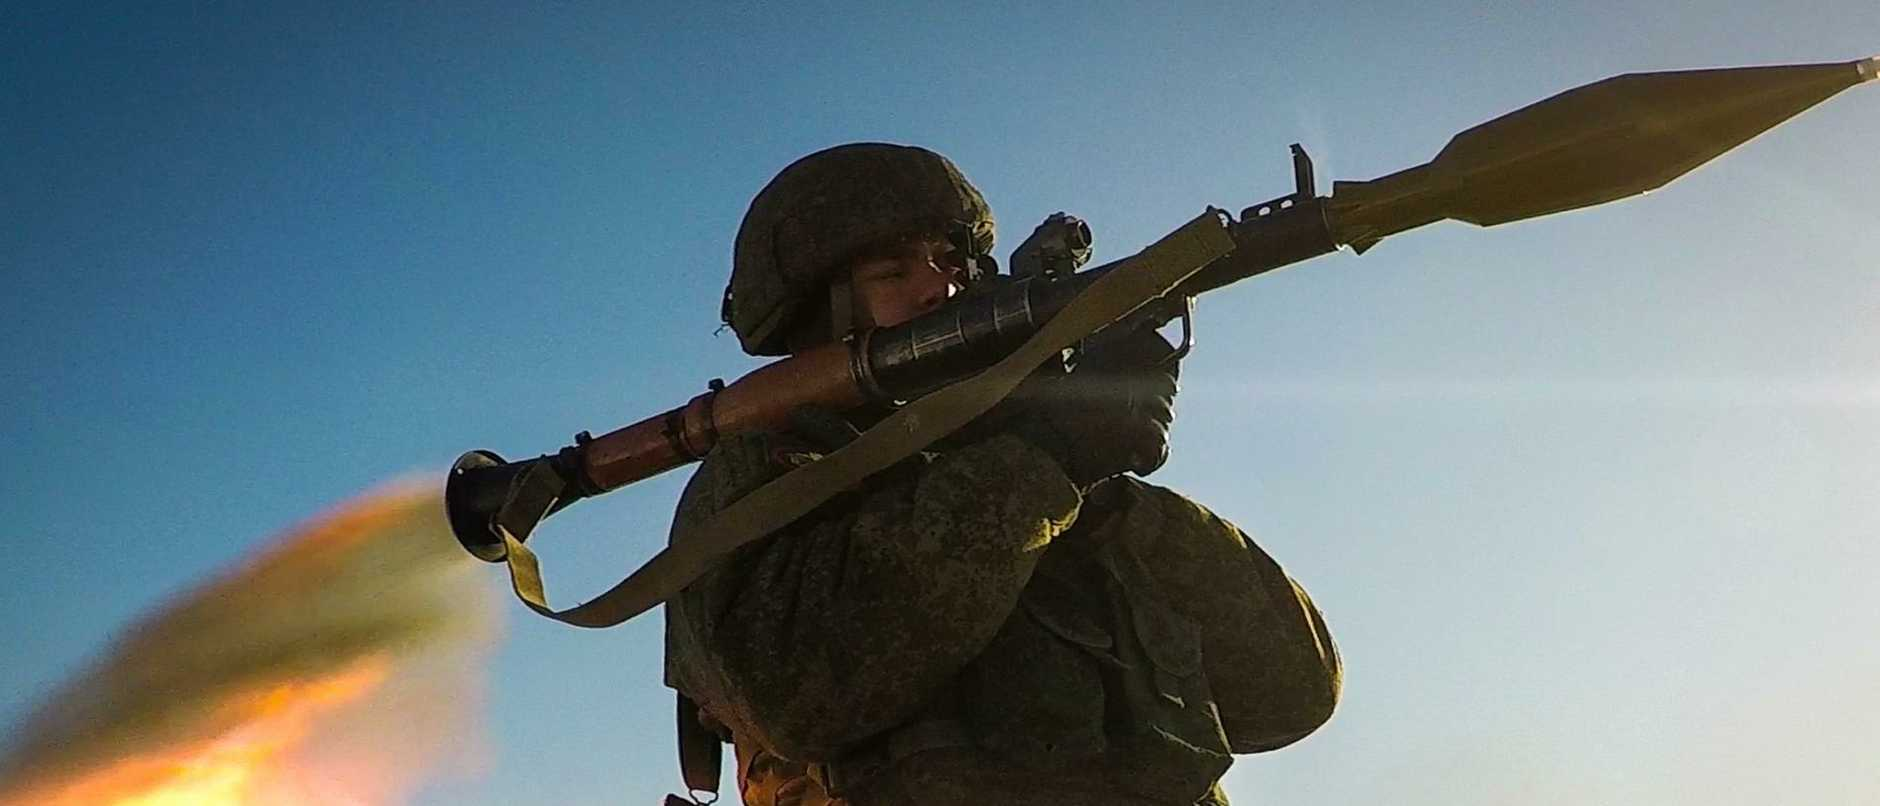 Naval infantry unit in military training in Russia's Far East